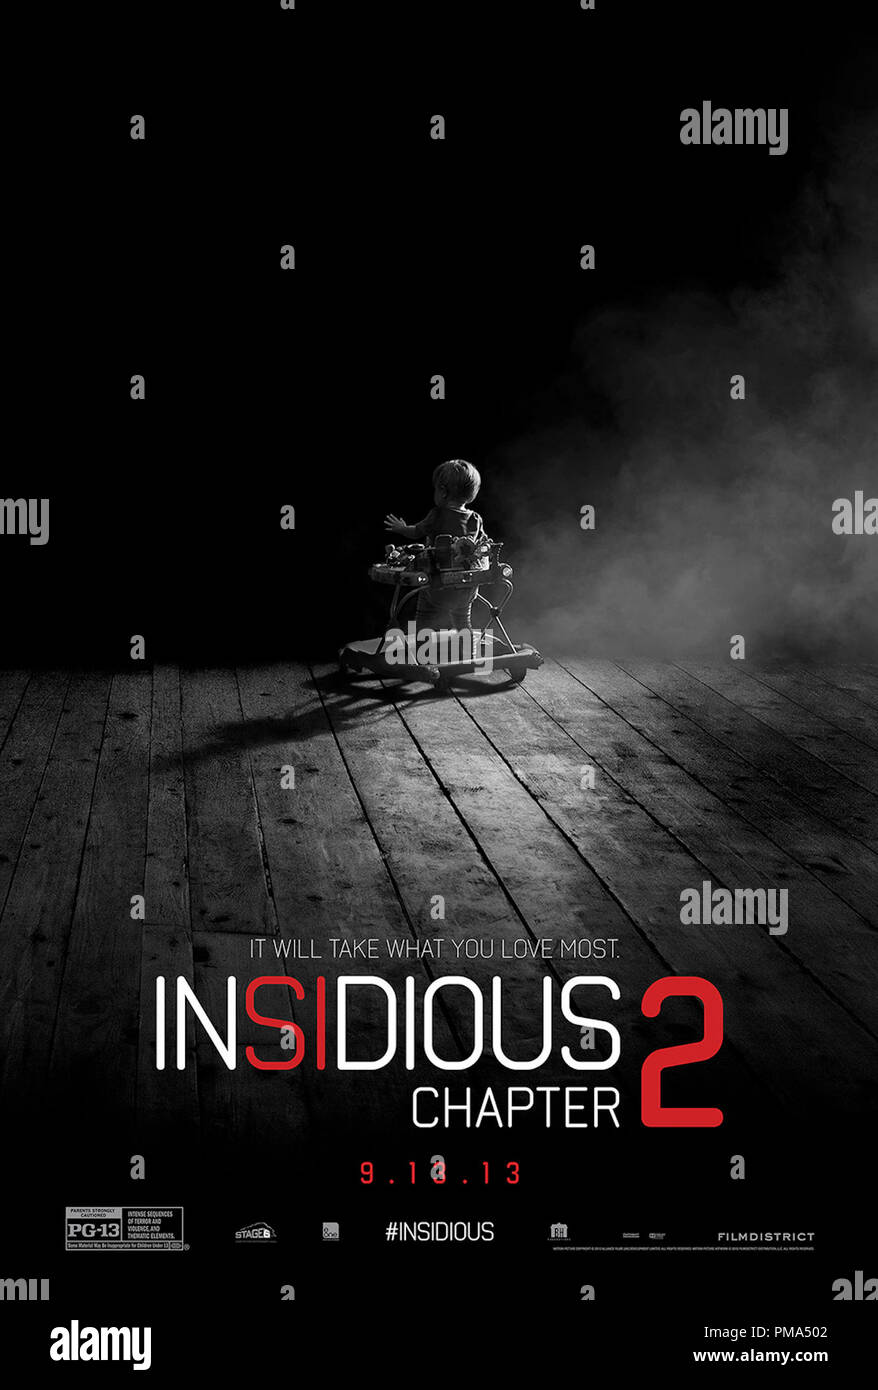 Filmdistrict S Insidious Chapter 2 Poster Stock Photo Alamy